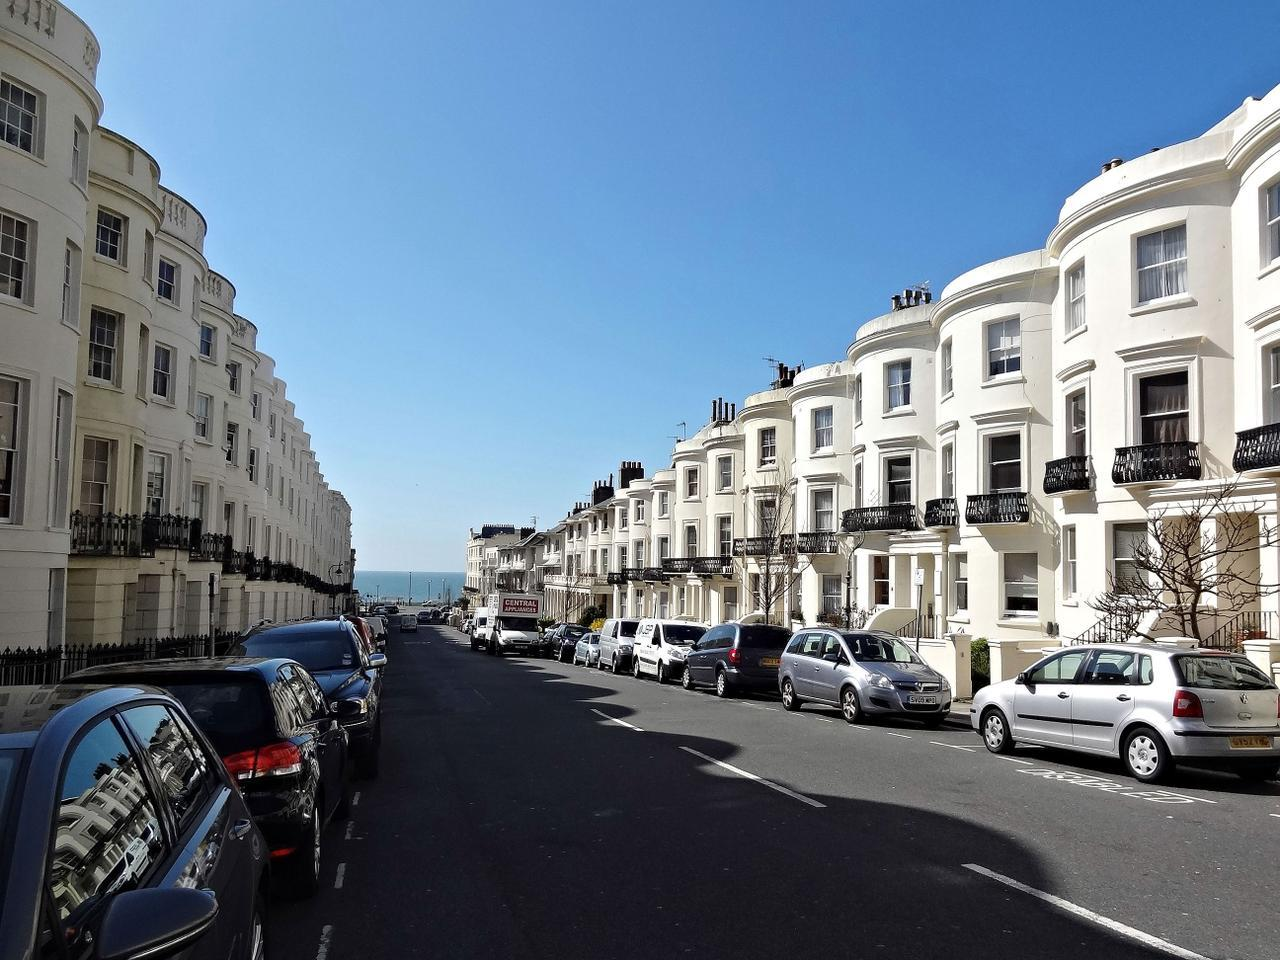 Seaside Place, Brighton & Hove Images - 7